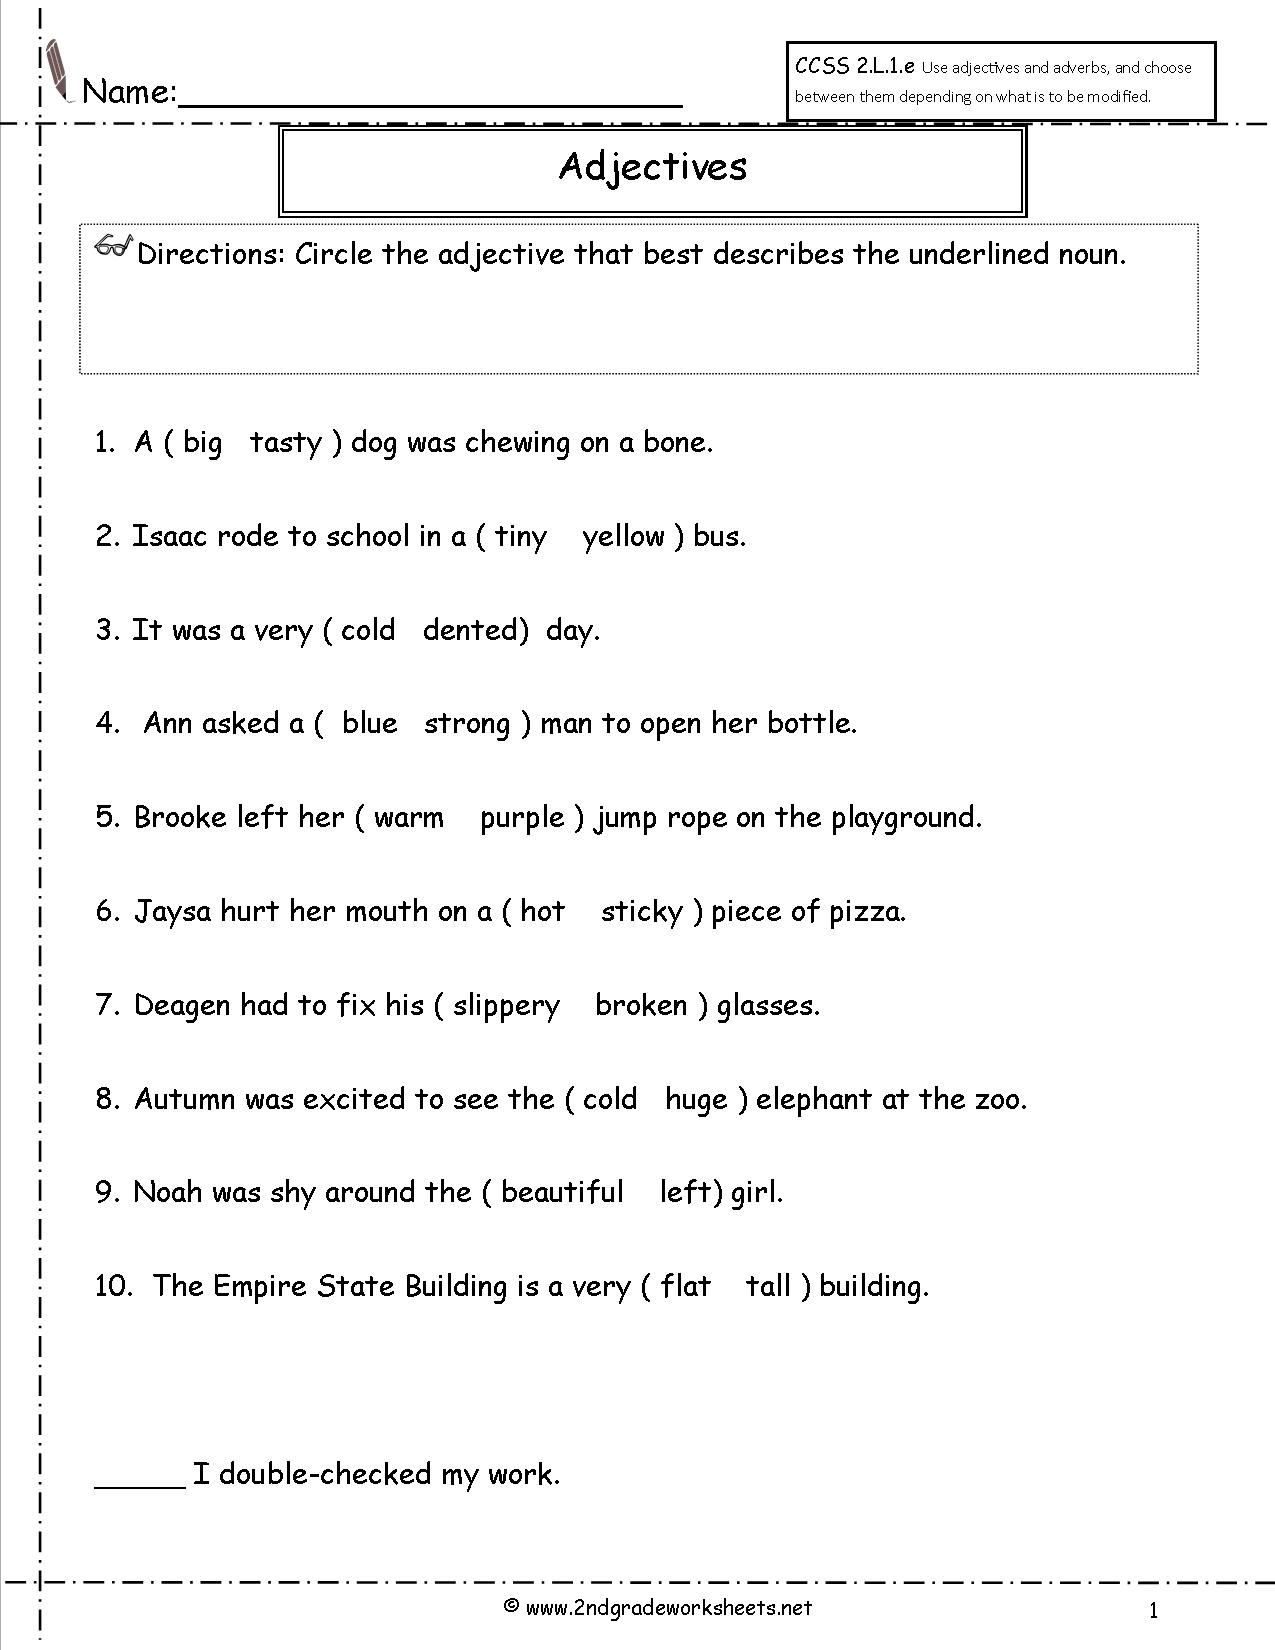 Adjectives Worksheets for Grade 1 Adjectives Worksheet